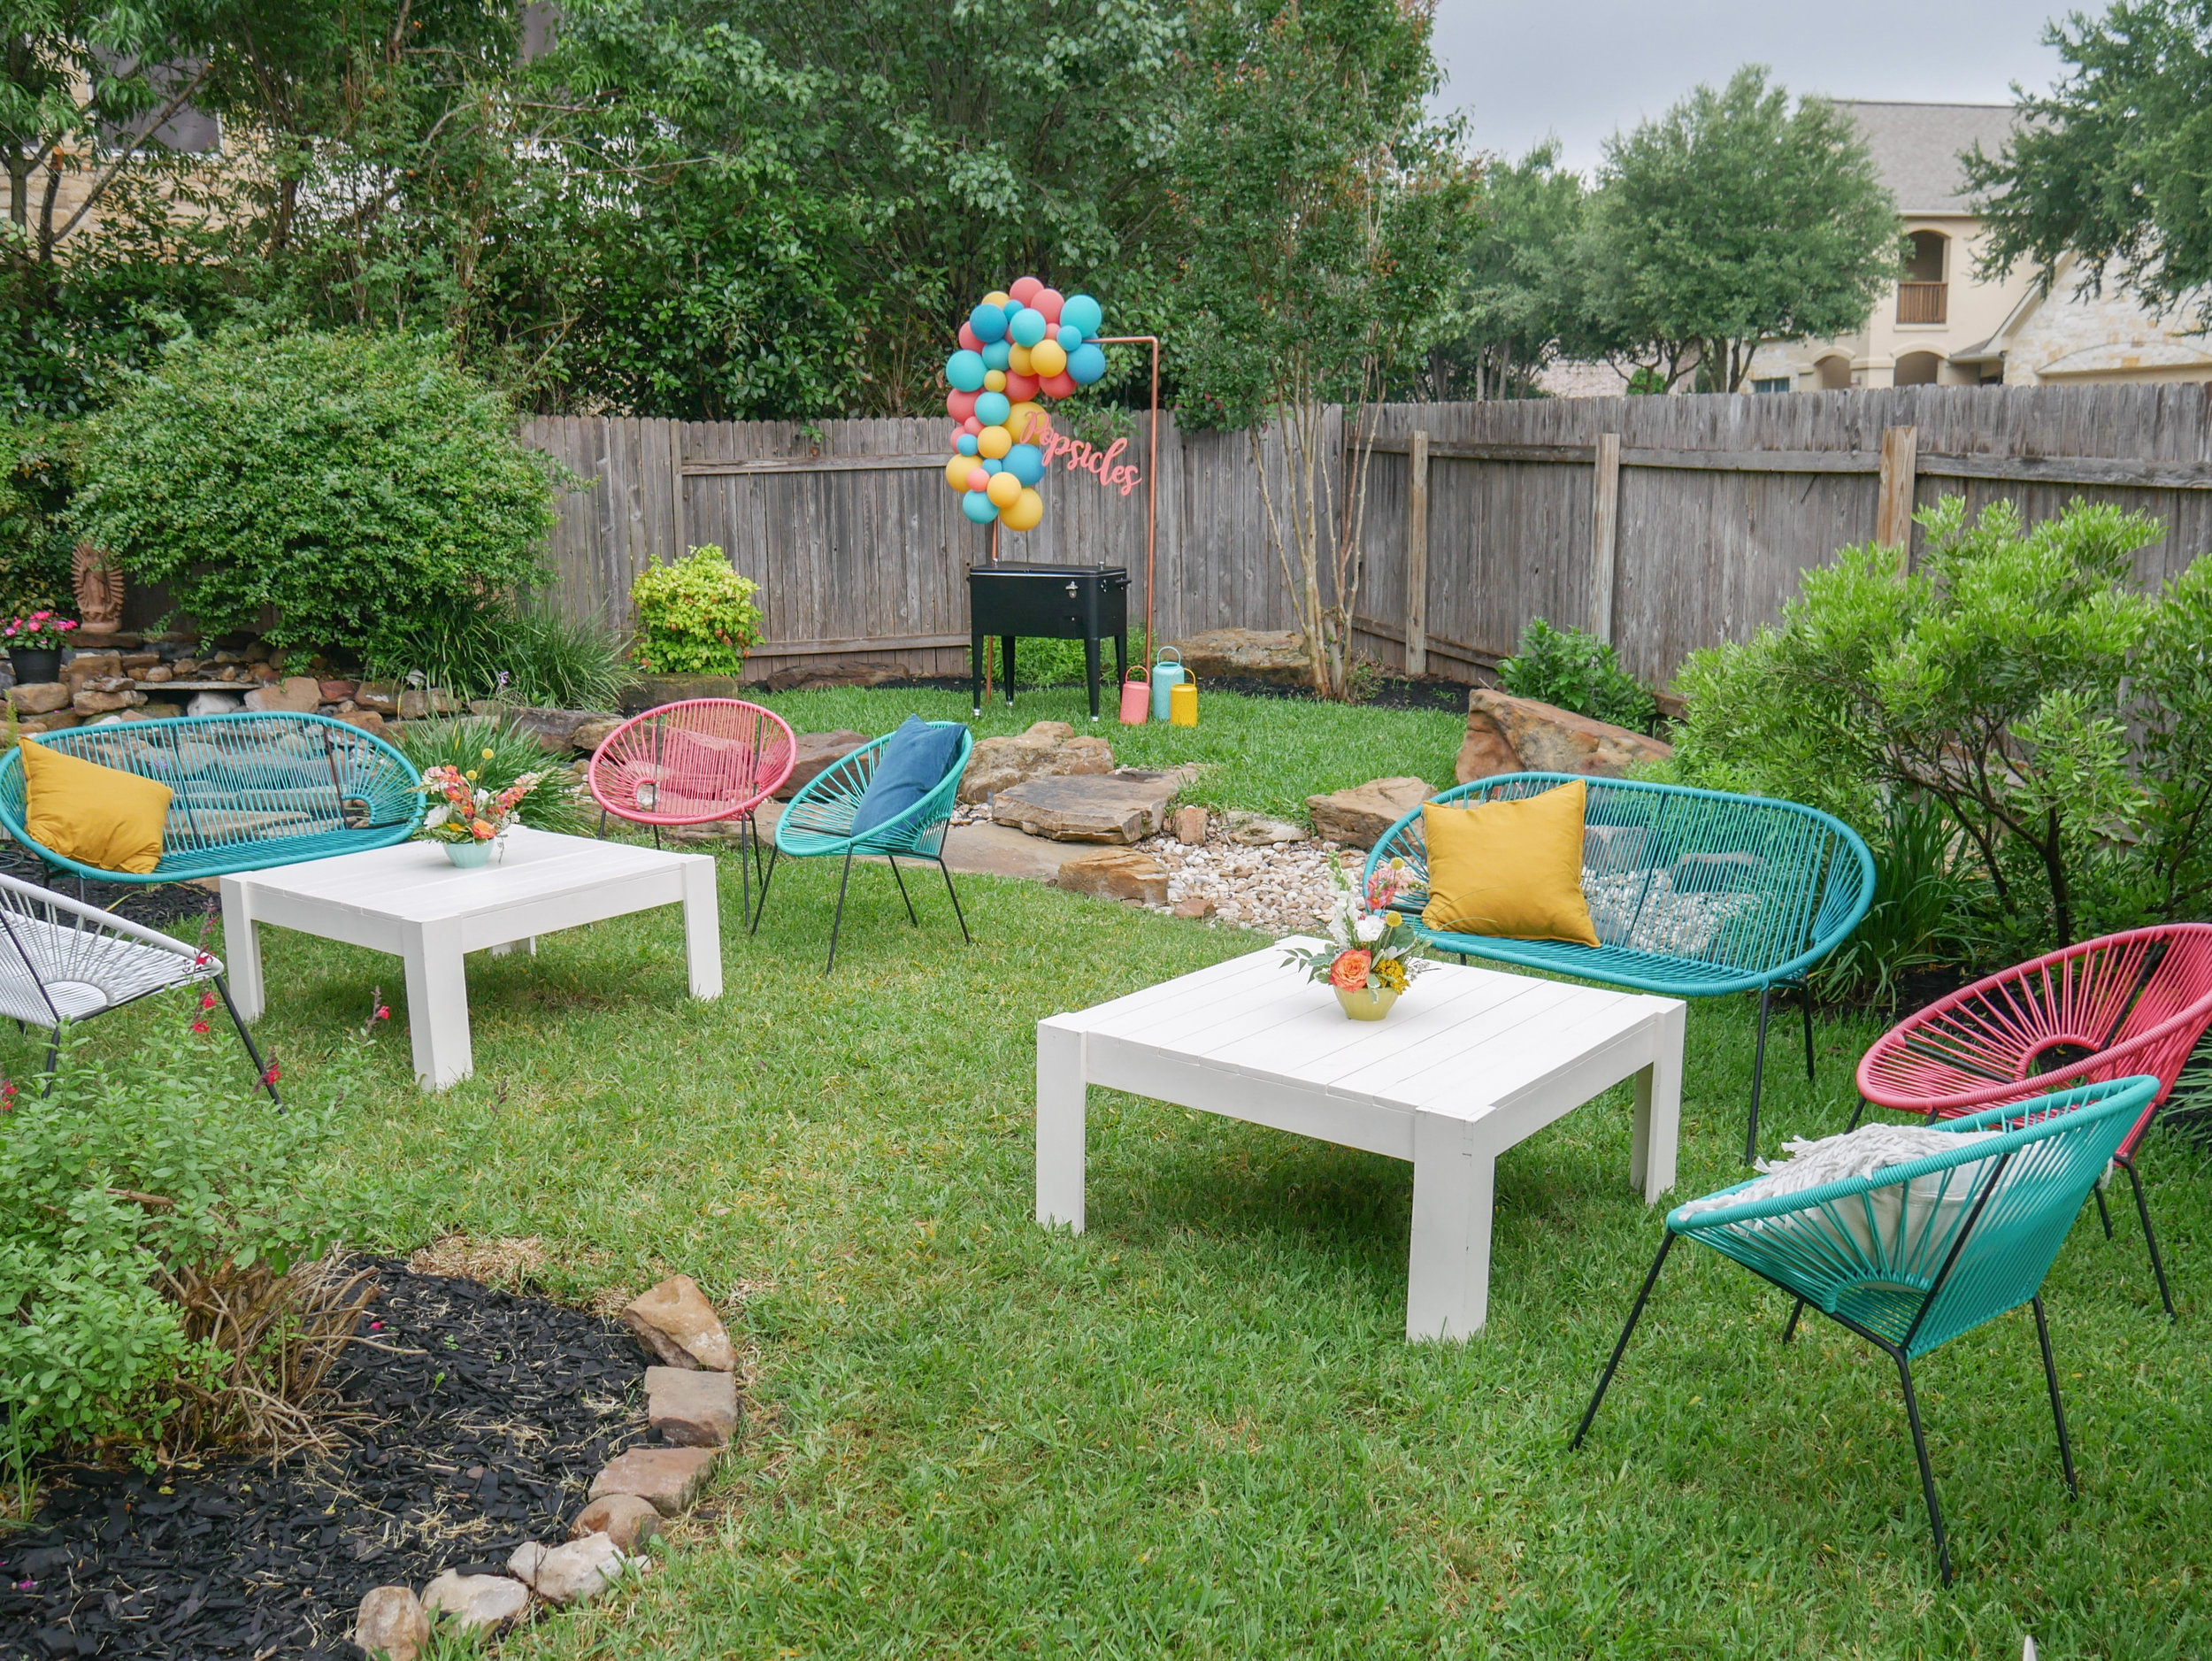 Modern Grad Party Ideas for outdoor entertaining include fun and colorful chairs. See more from this Grad Party on Mint Event Design www.minteventdesign.com #graduationparty #graduationpartyideas #graduation #gradparty #gradpartyideas #outdoorentertaining #outdoordining